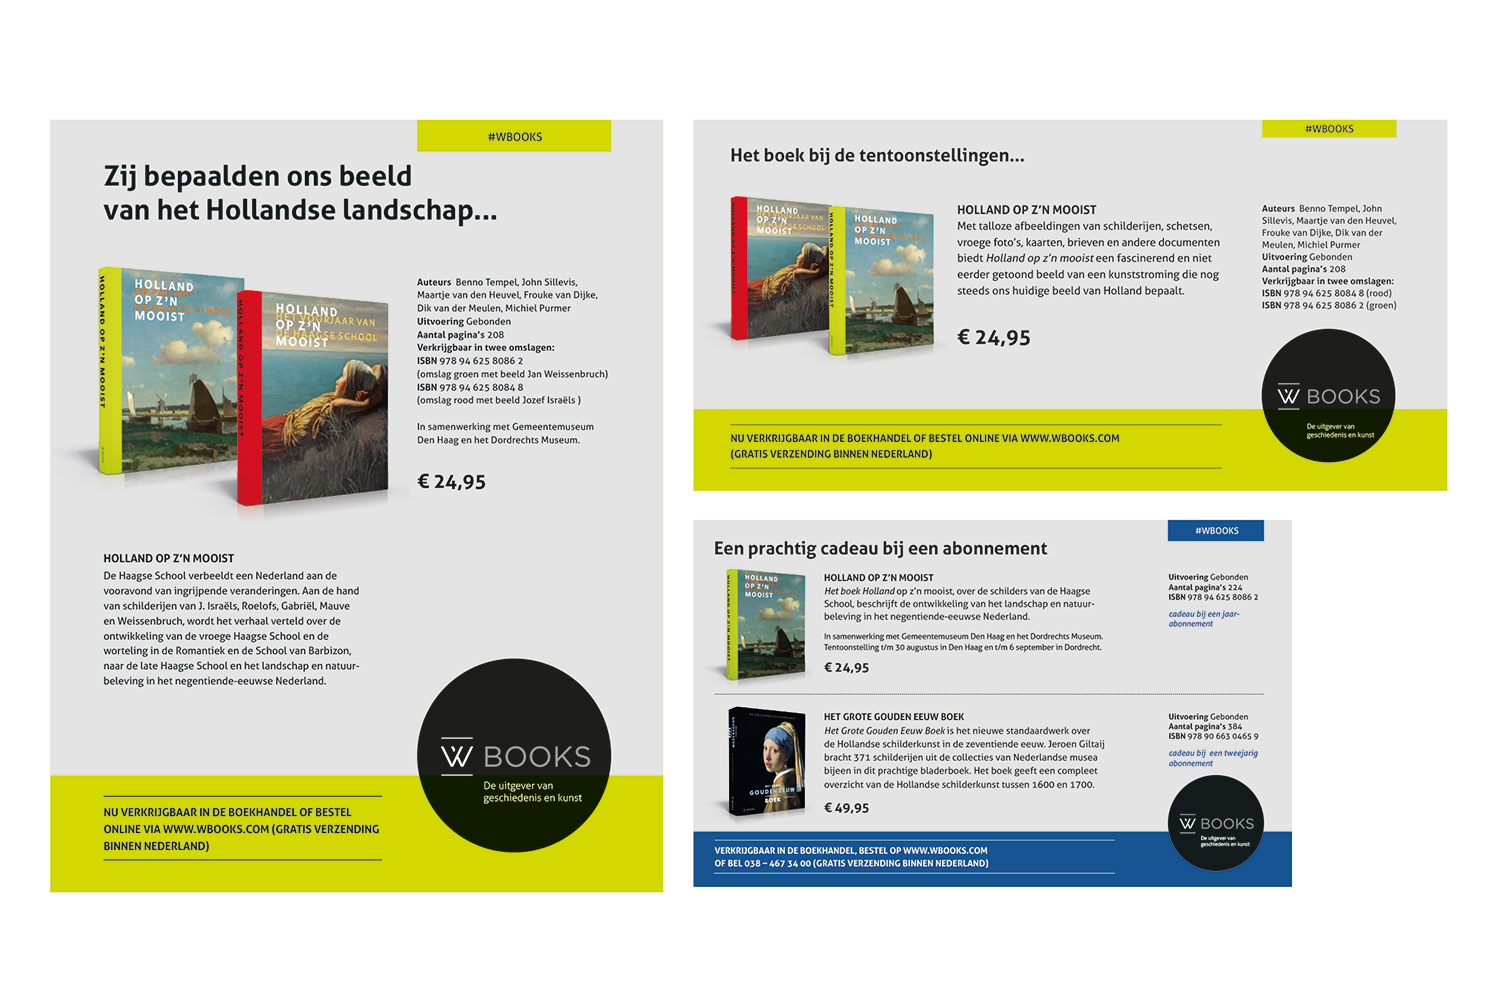 Advertentie-Wbooks-diverse